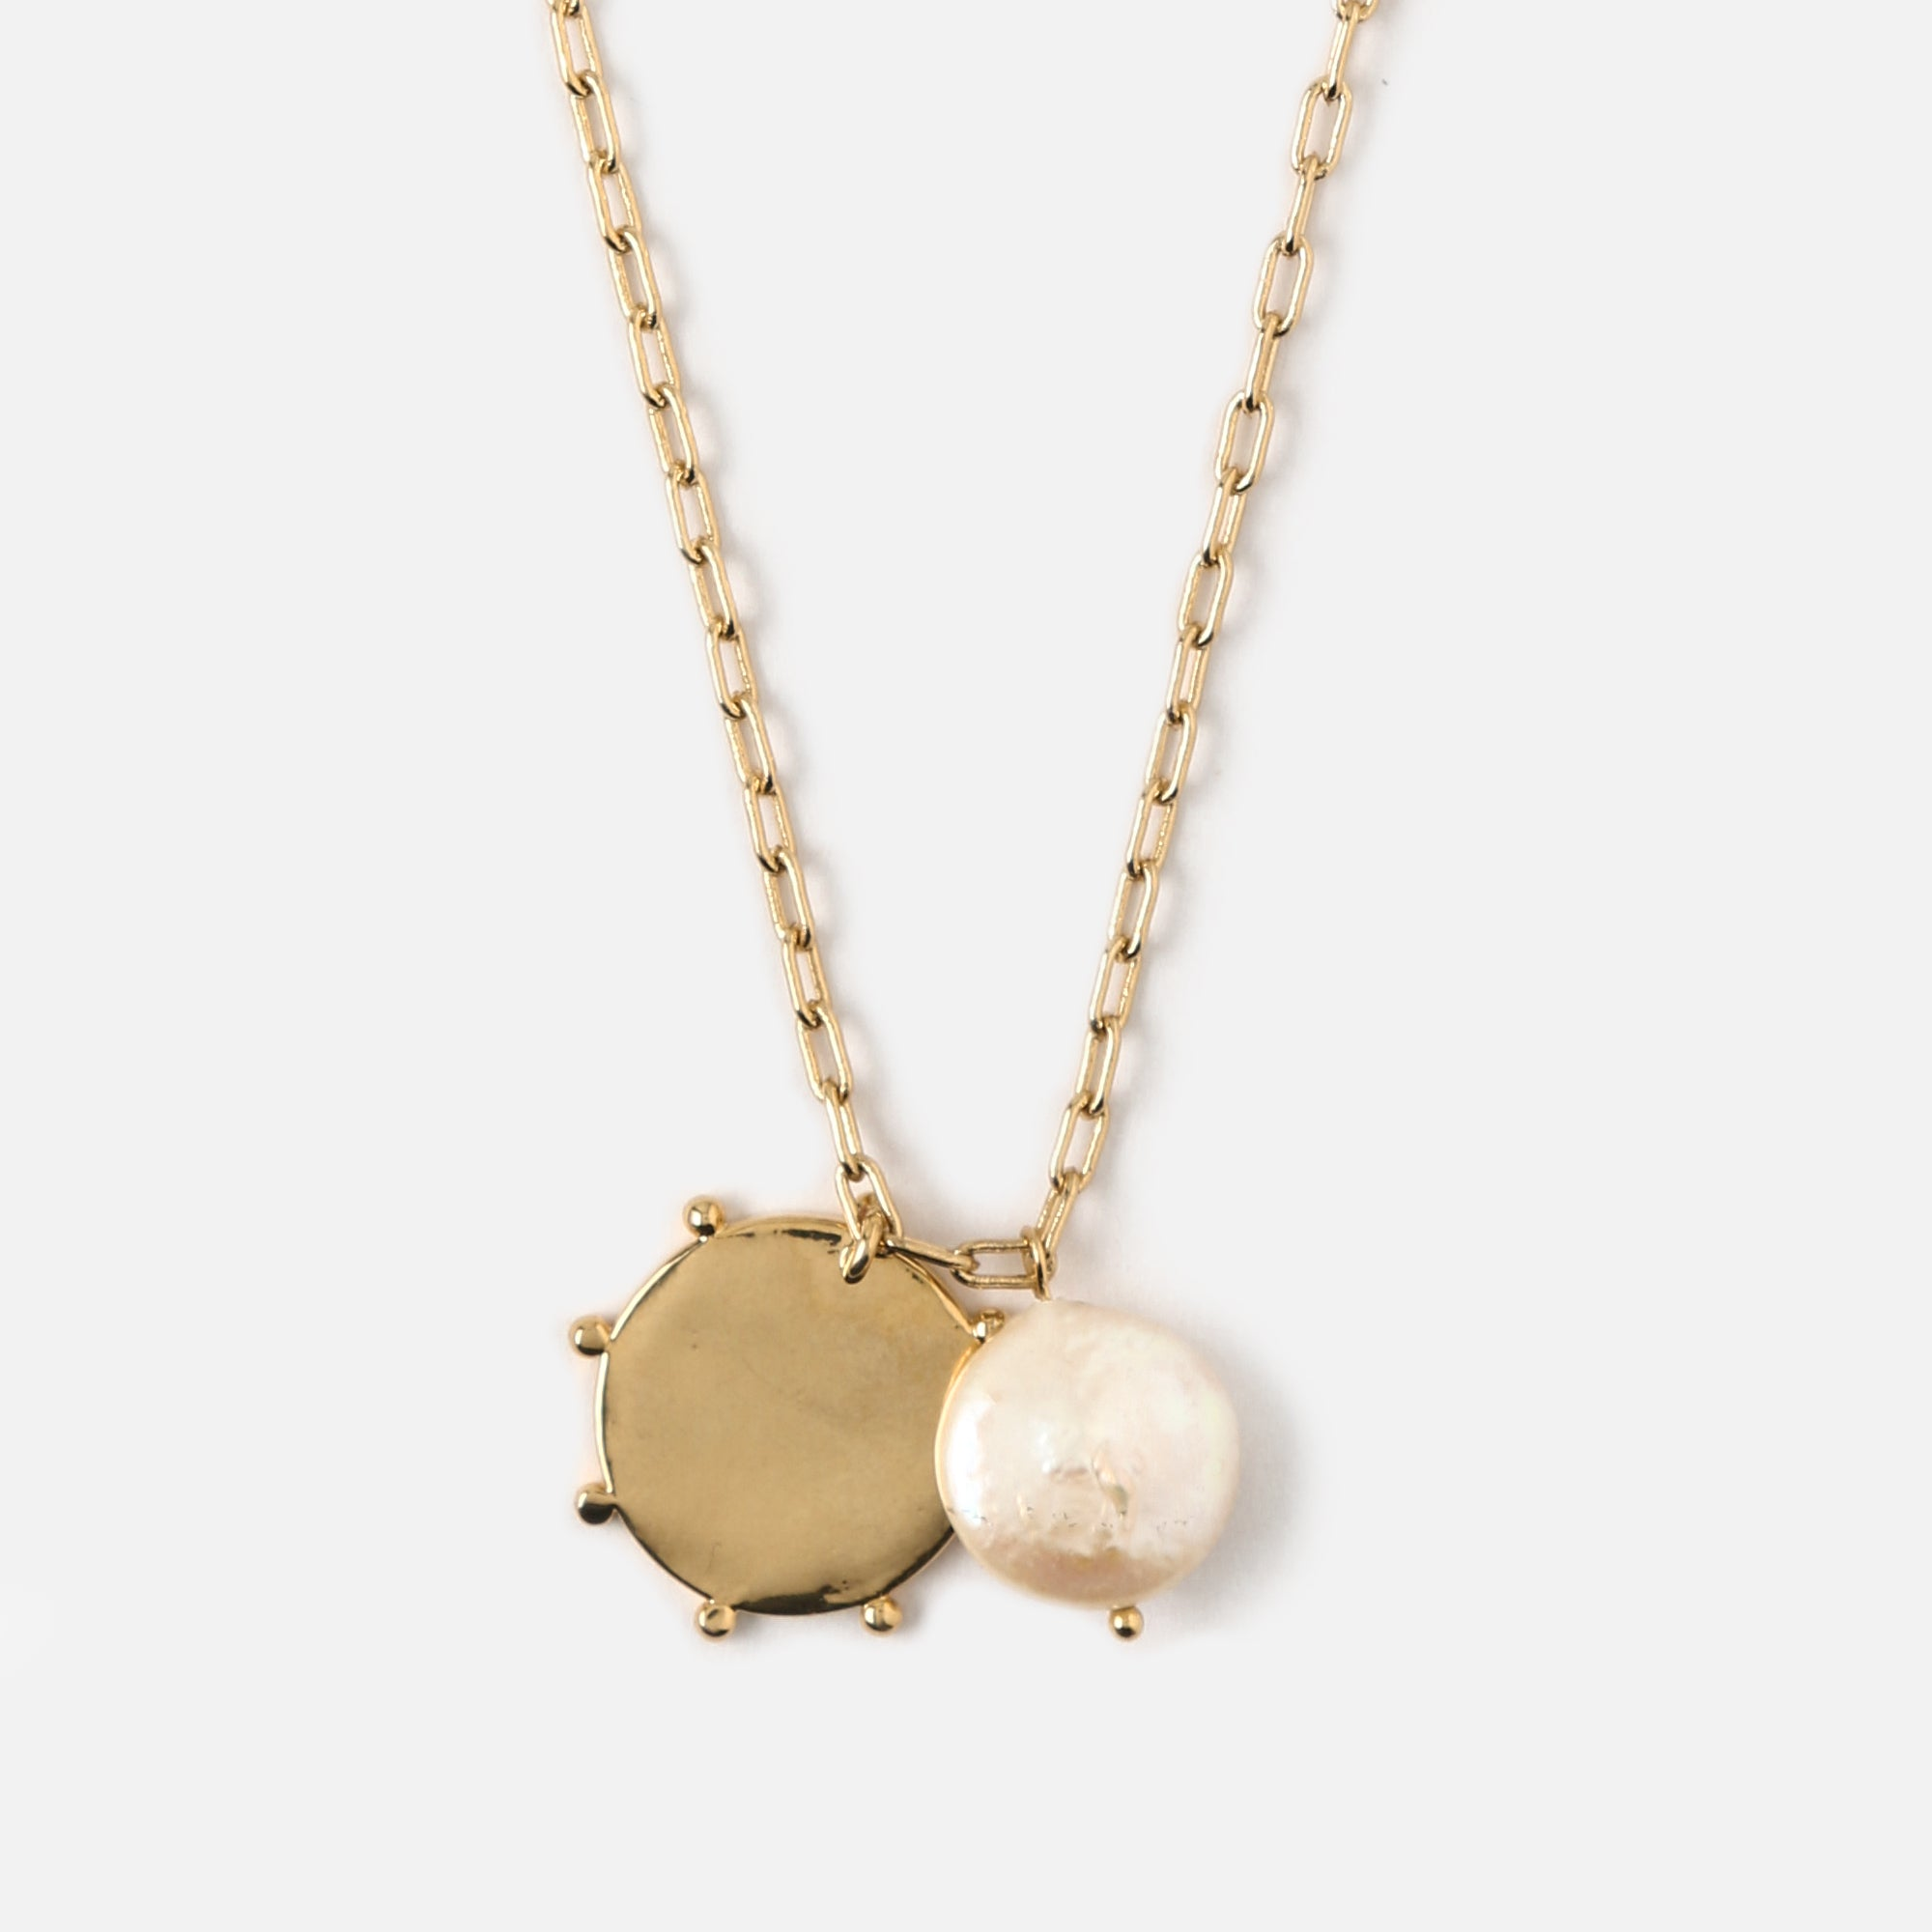 Pearl & Medallion Long Link Necklace